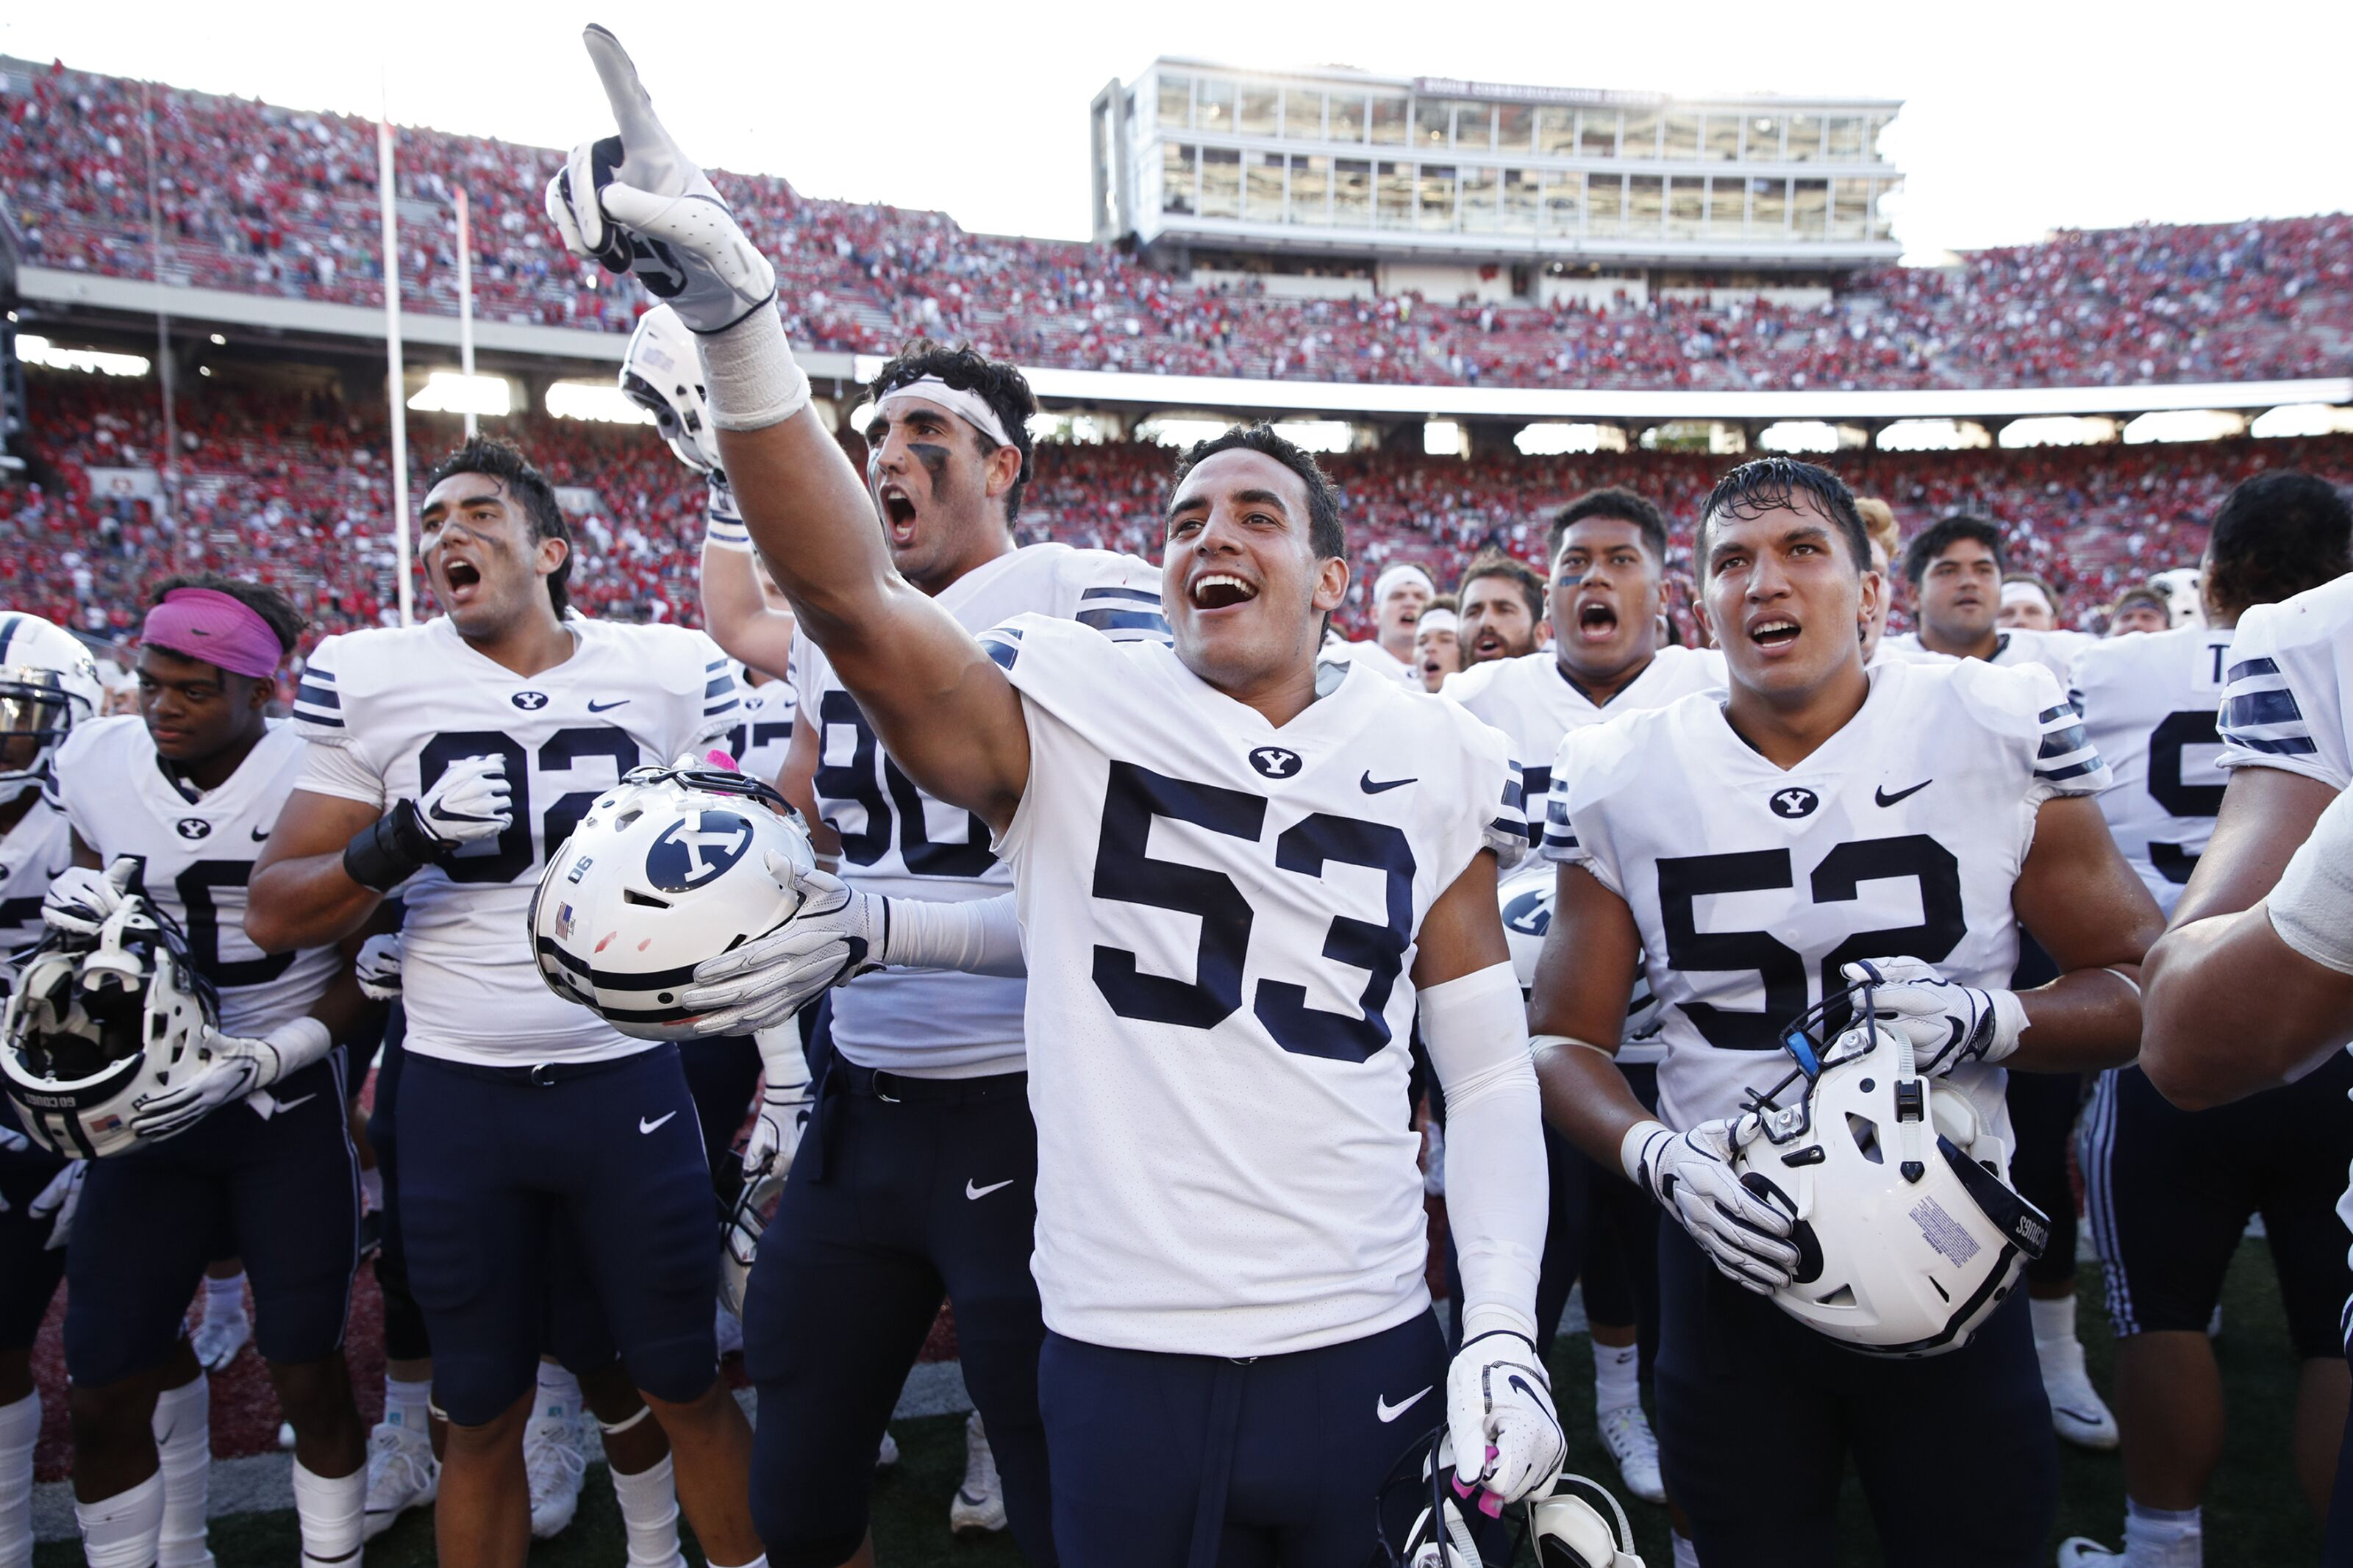 Byu Football Top 10 Cougar Wins Of All Time